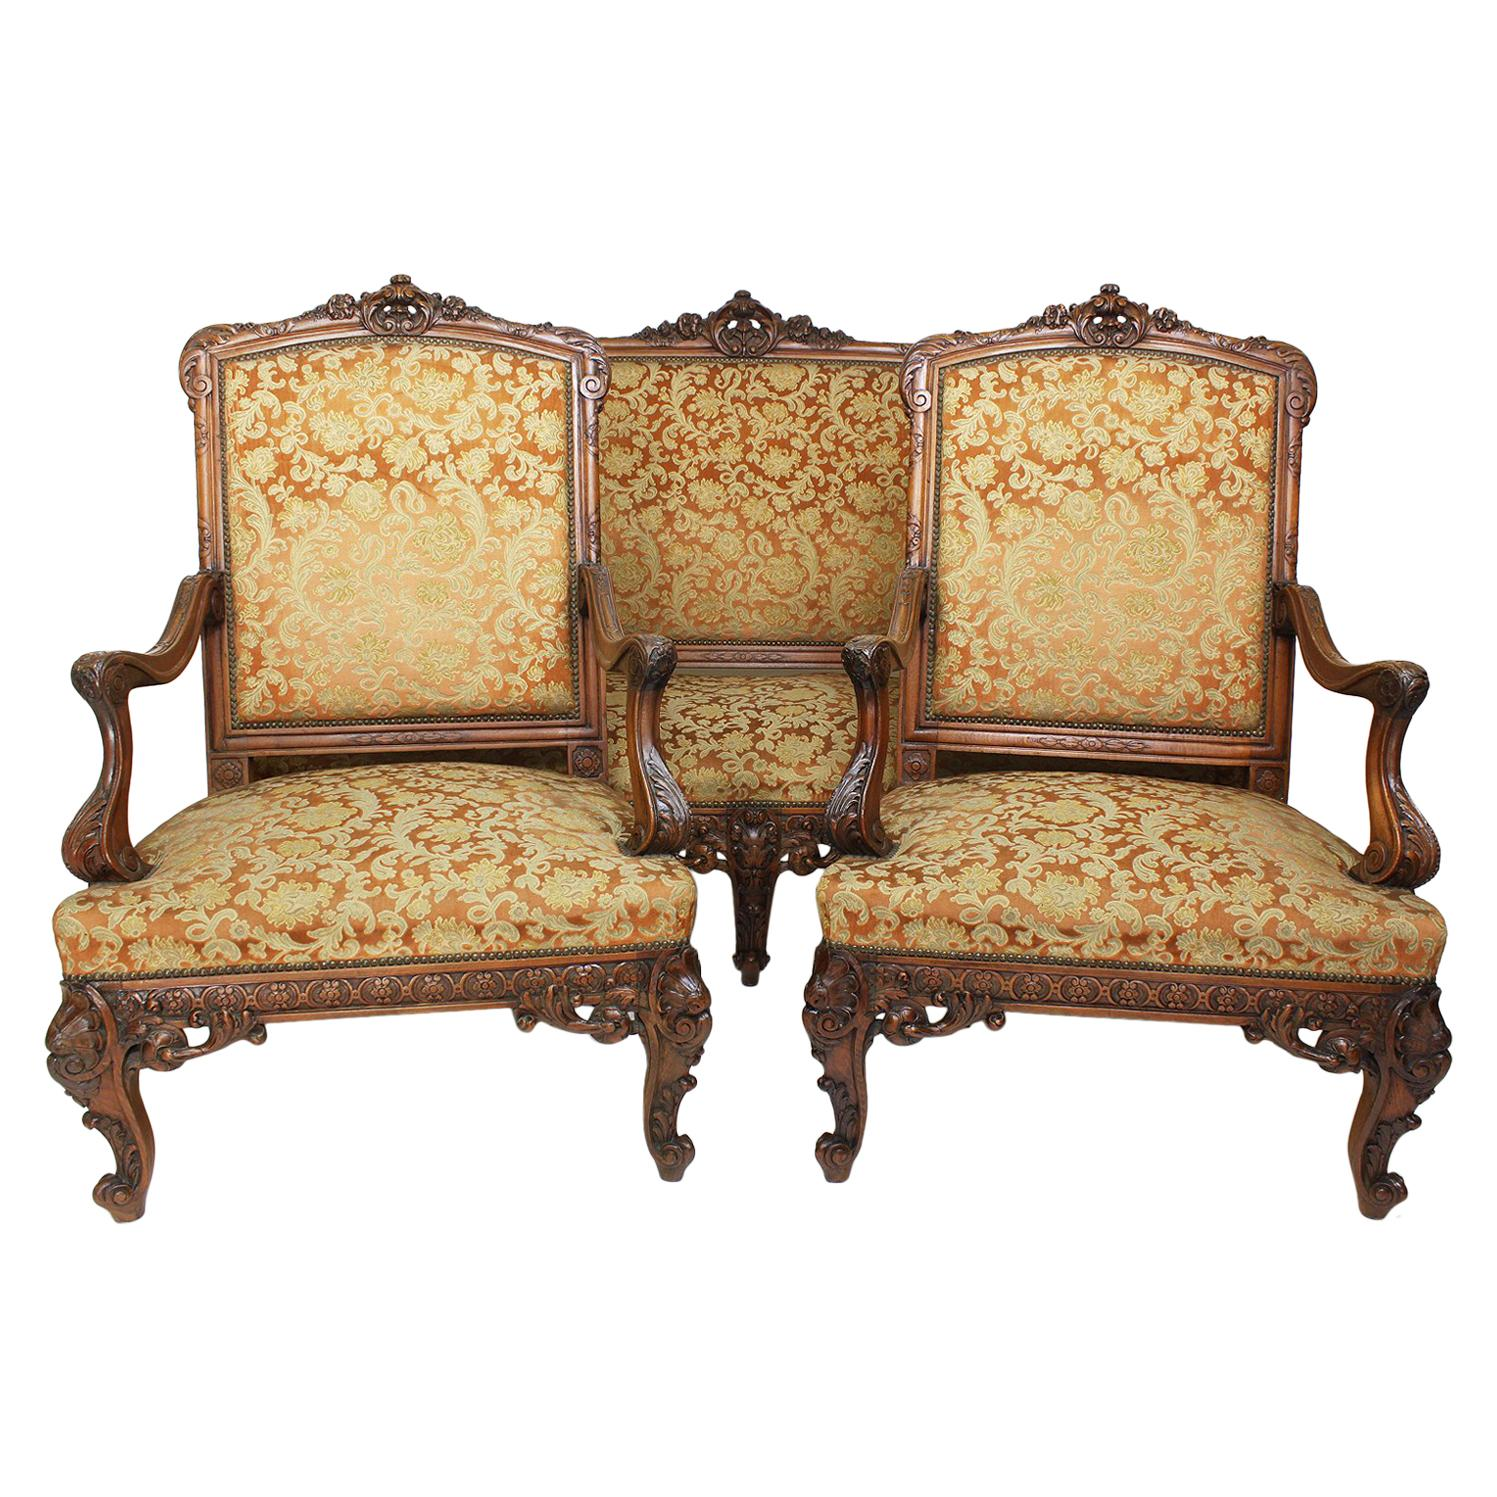 Fine French 19th Century Louis XV Style Carved Walnut Three-Piece Salon Suite